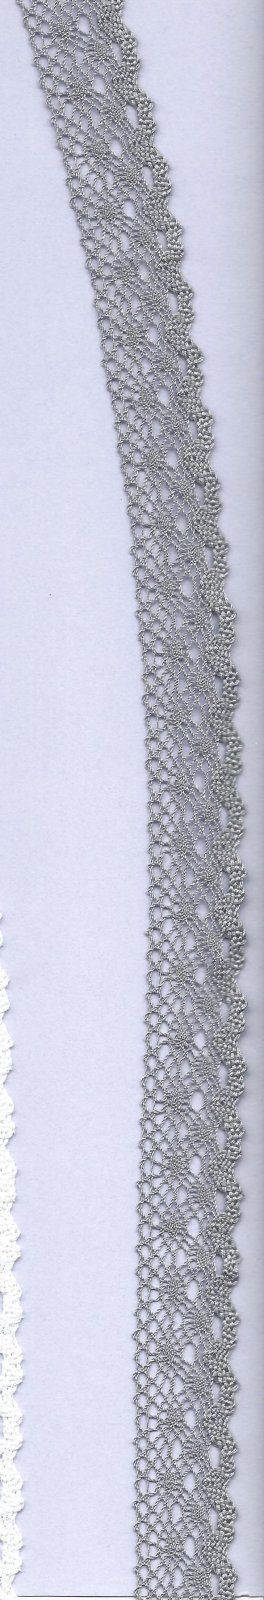 PFA COTTON LACE TRIM 20mm col. 033